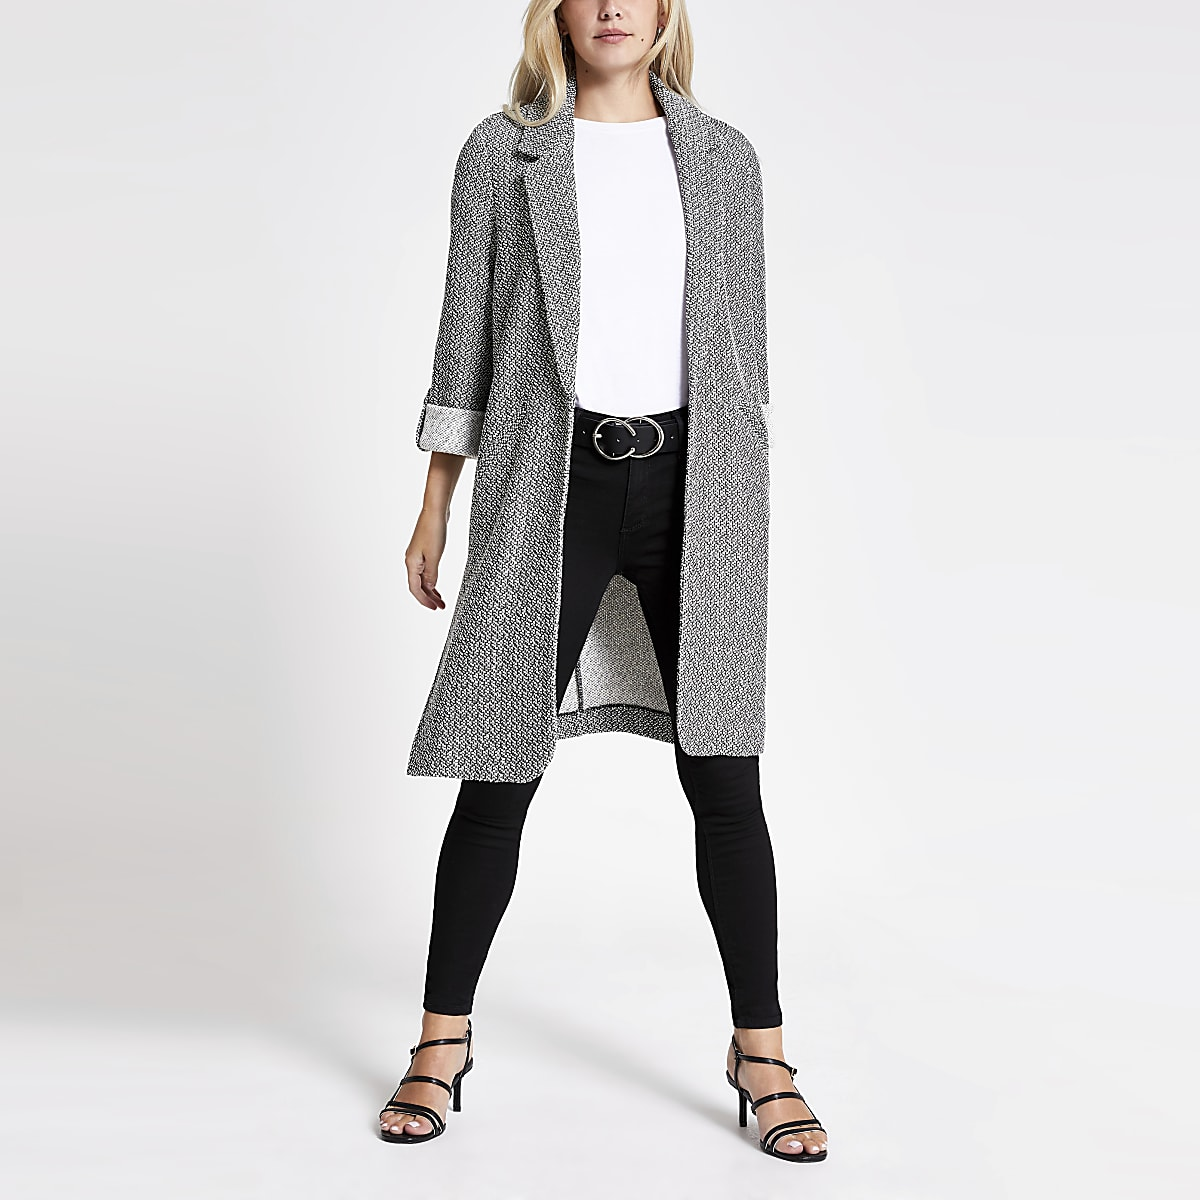 Petite black textured jersey duster jacket